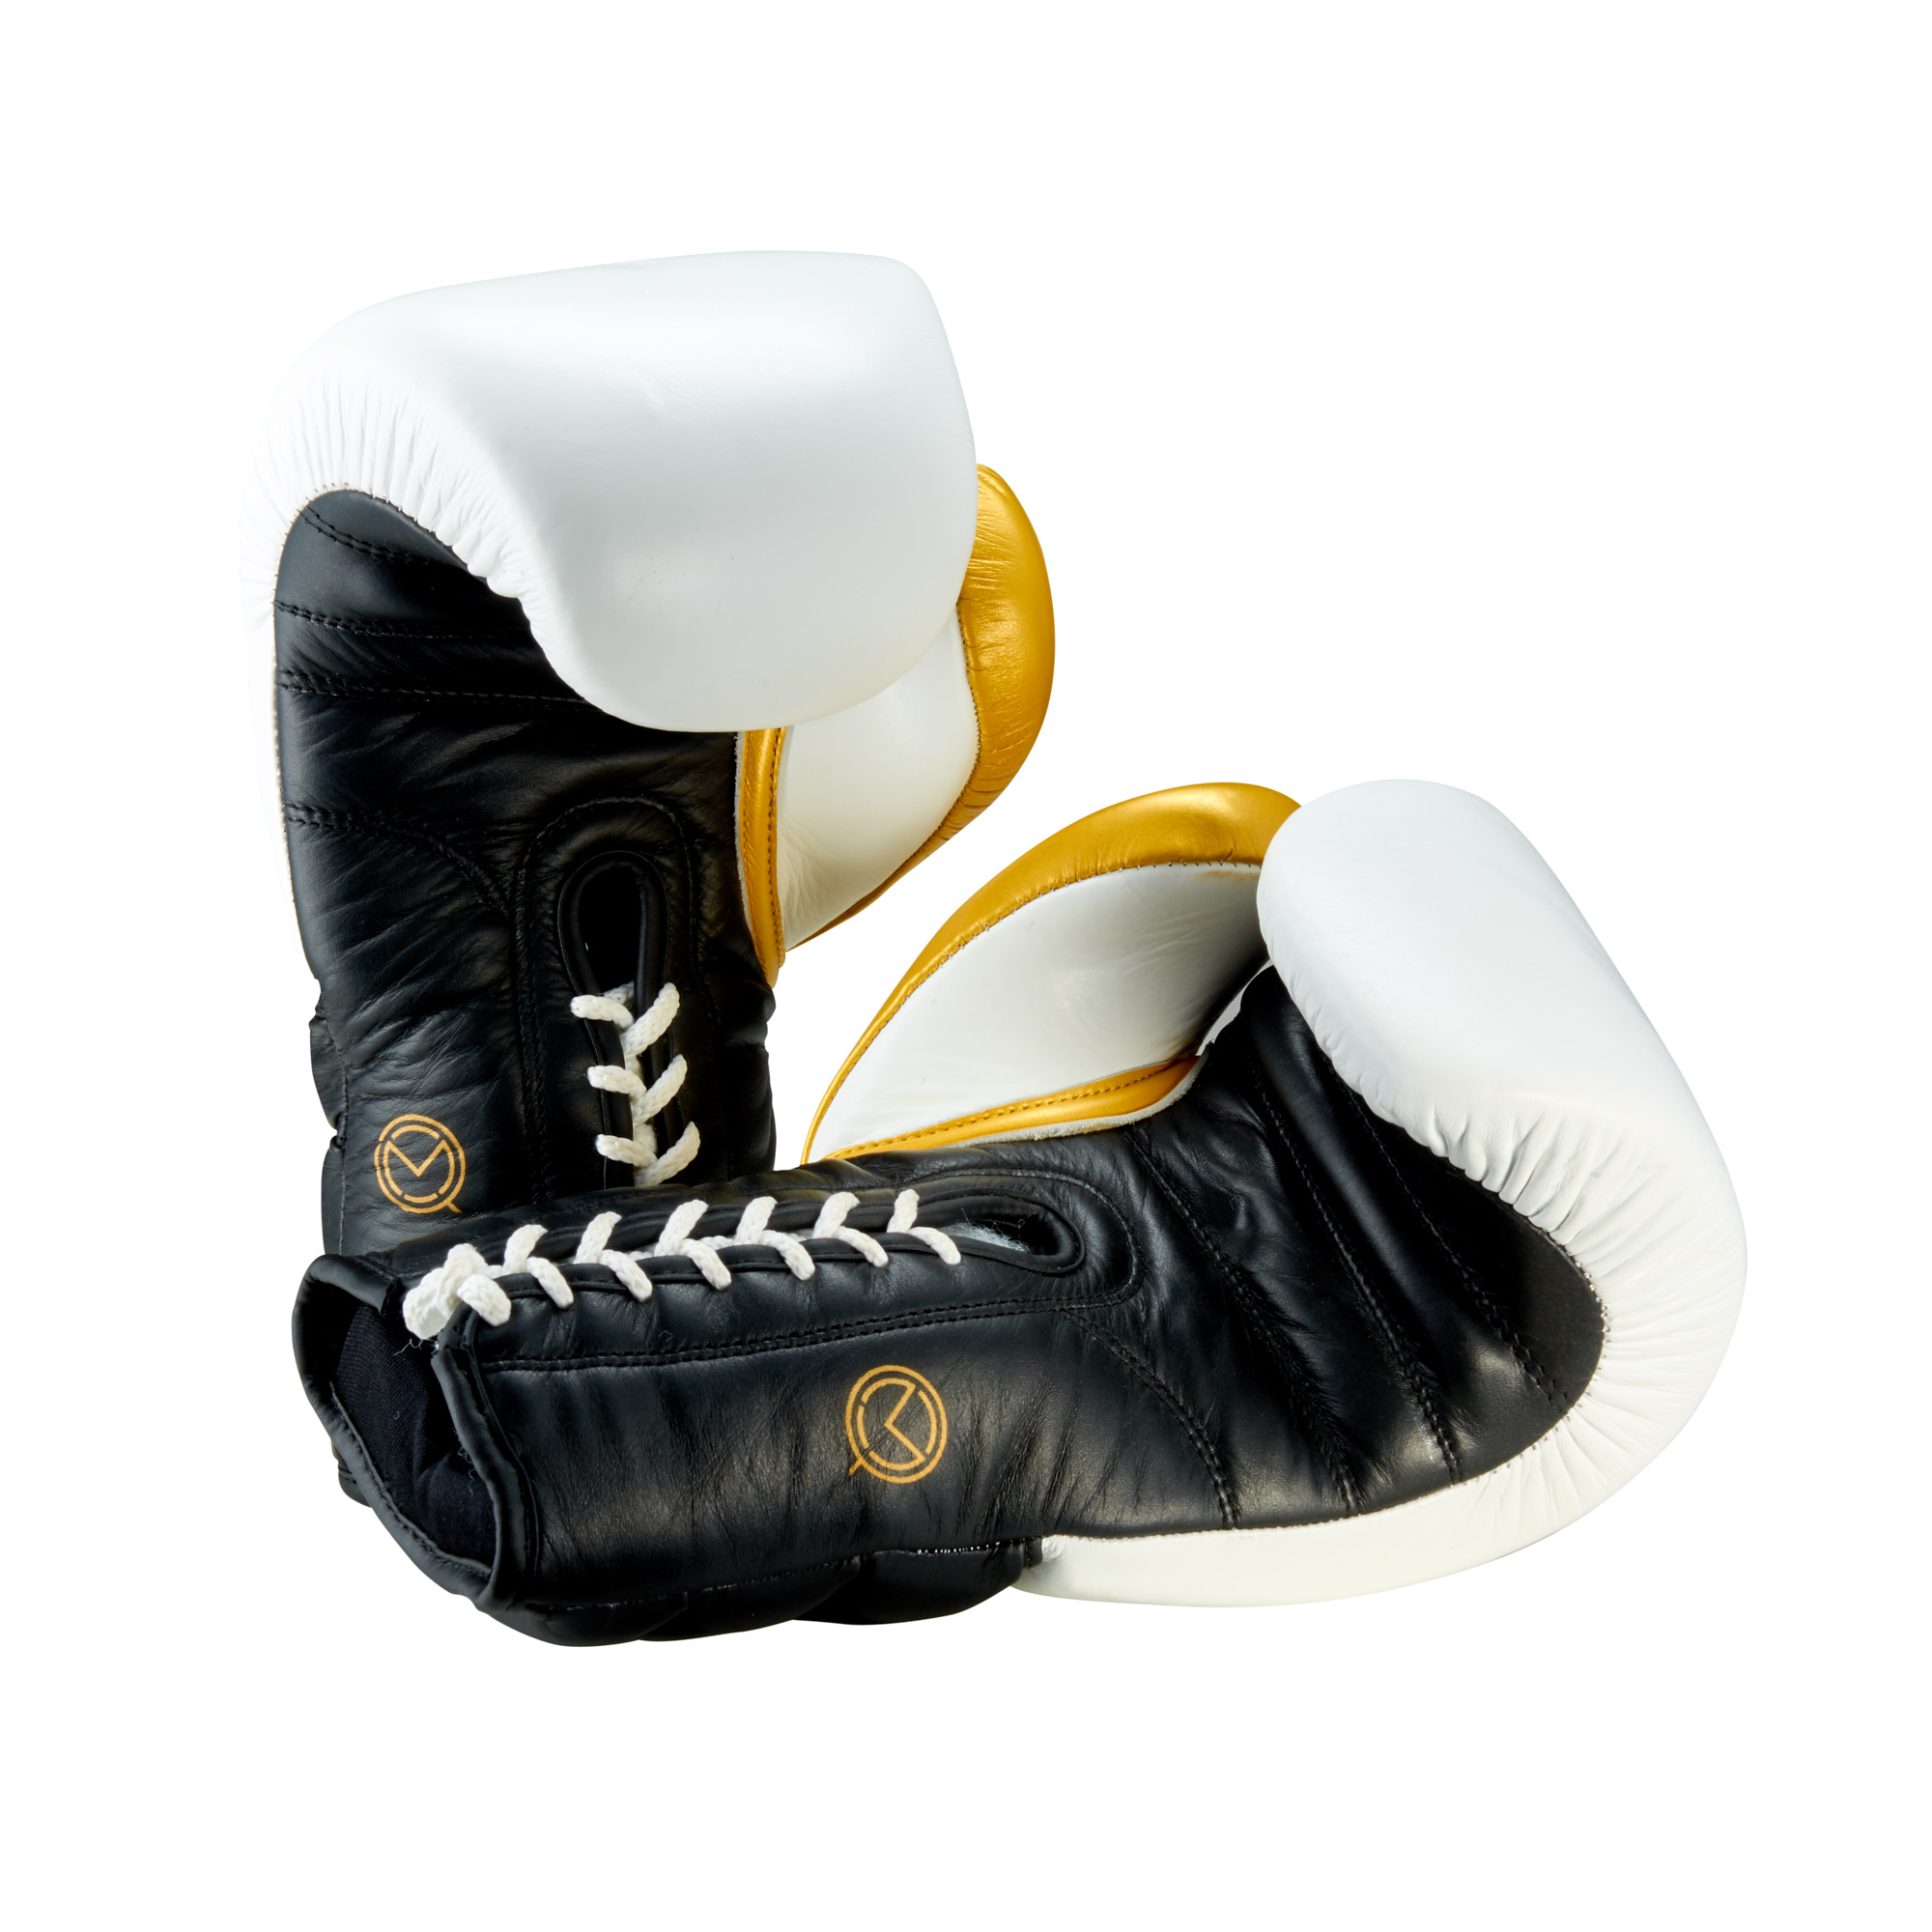 Ian Knaggs Commercial Packshot Photographer - Boxing Gloves